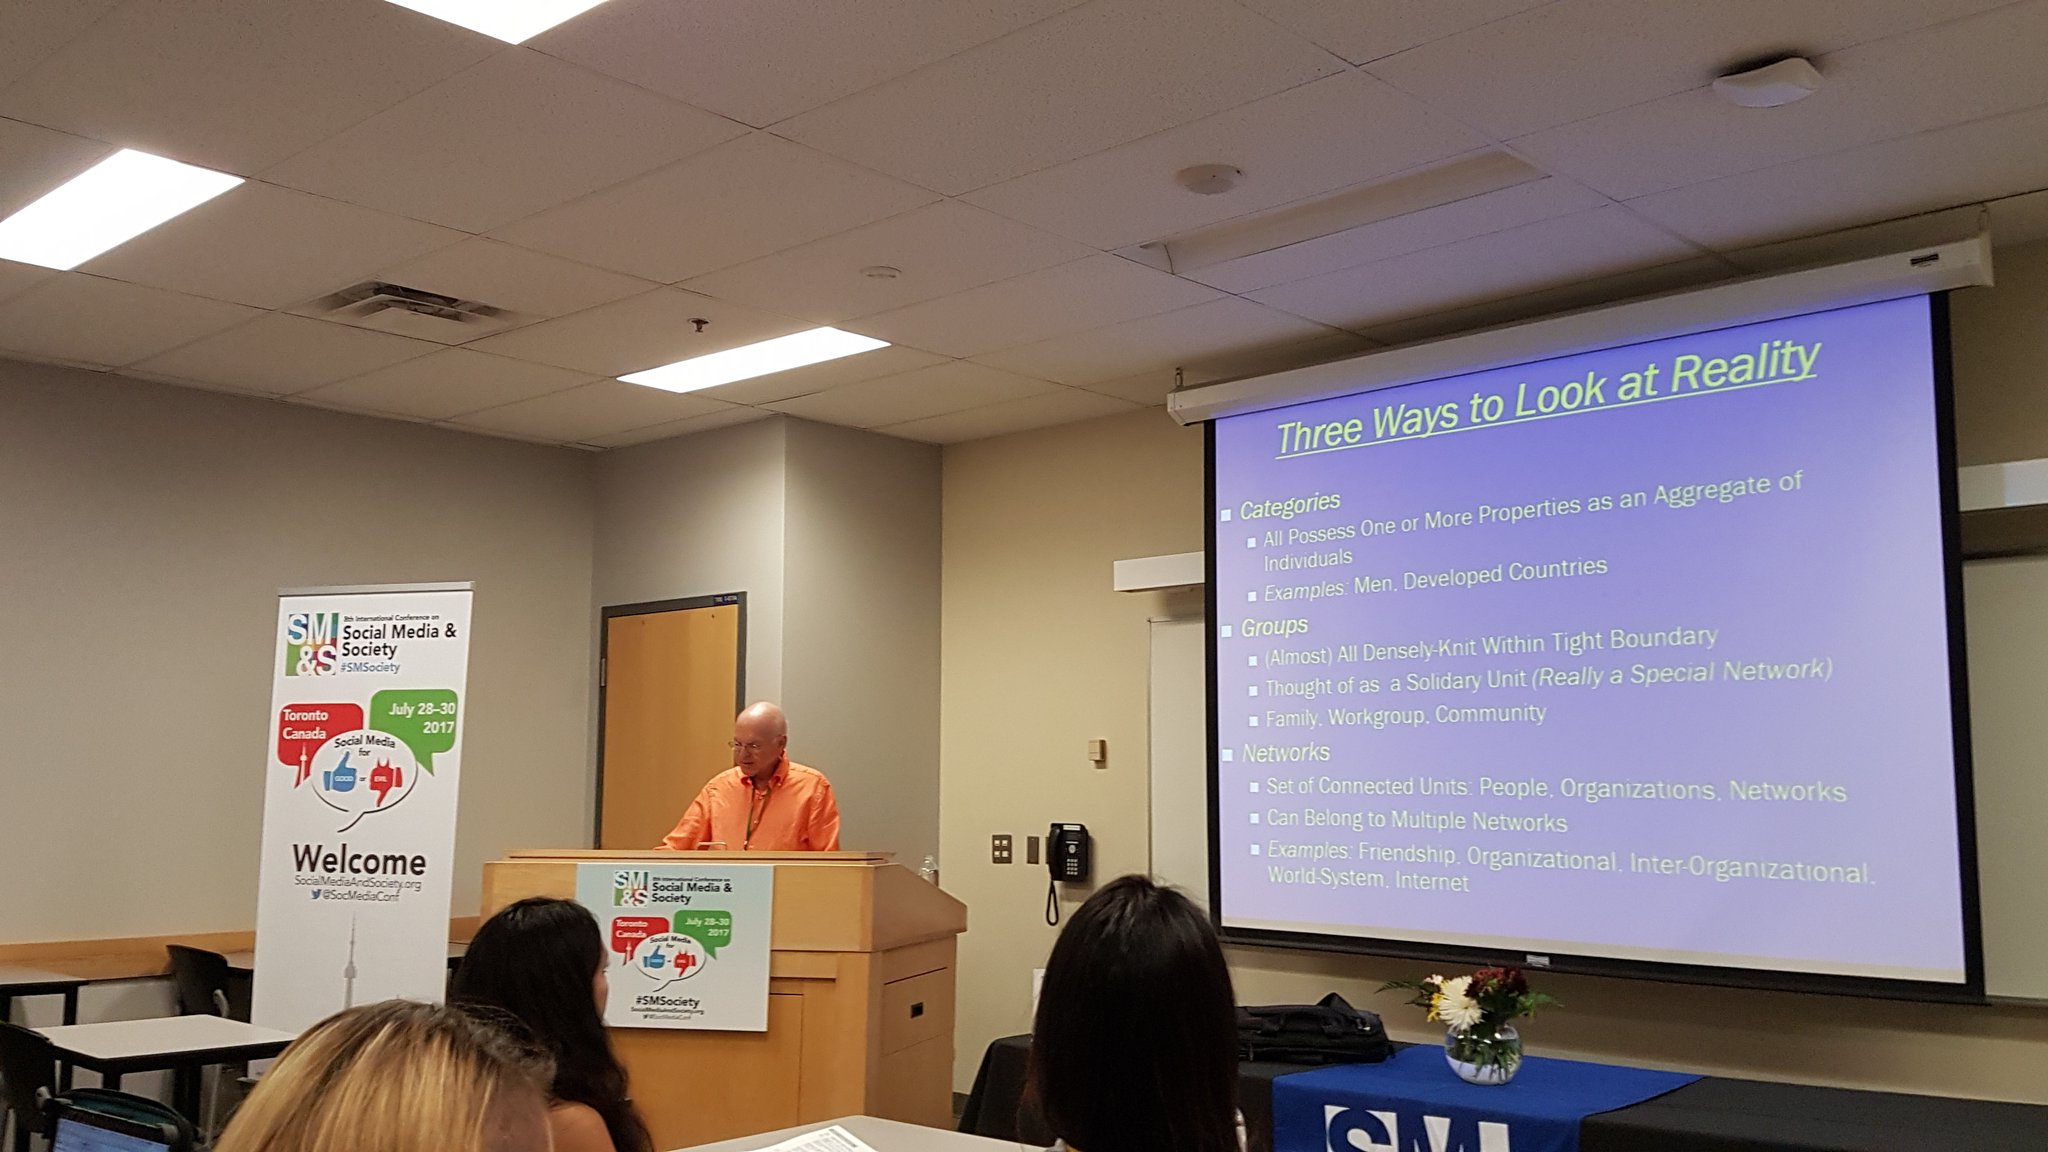 What a privilege to hear the legendary Dr. Berry Wellman talk about network!!! #SMSociety https://t.co/A644e15EKR